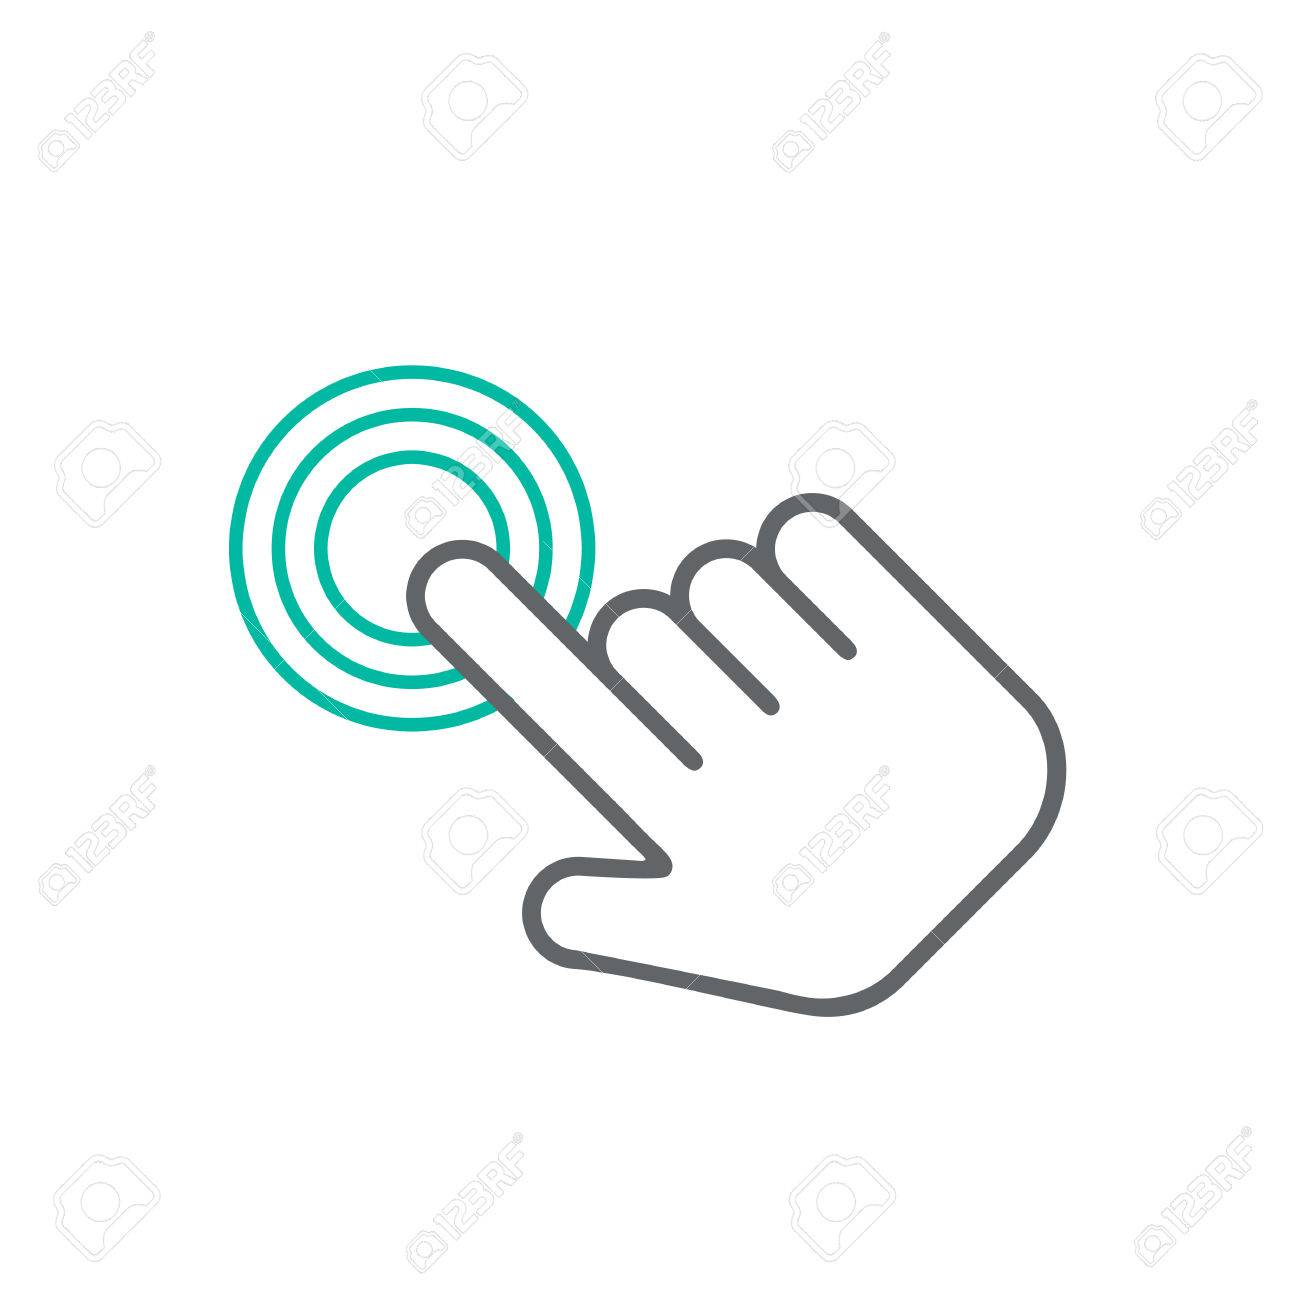 Click hand icon, click hand icon vector, flat click hand icon design. White click hand icon on white background - 53407923